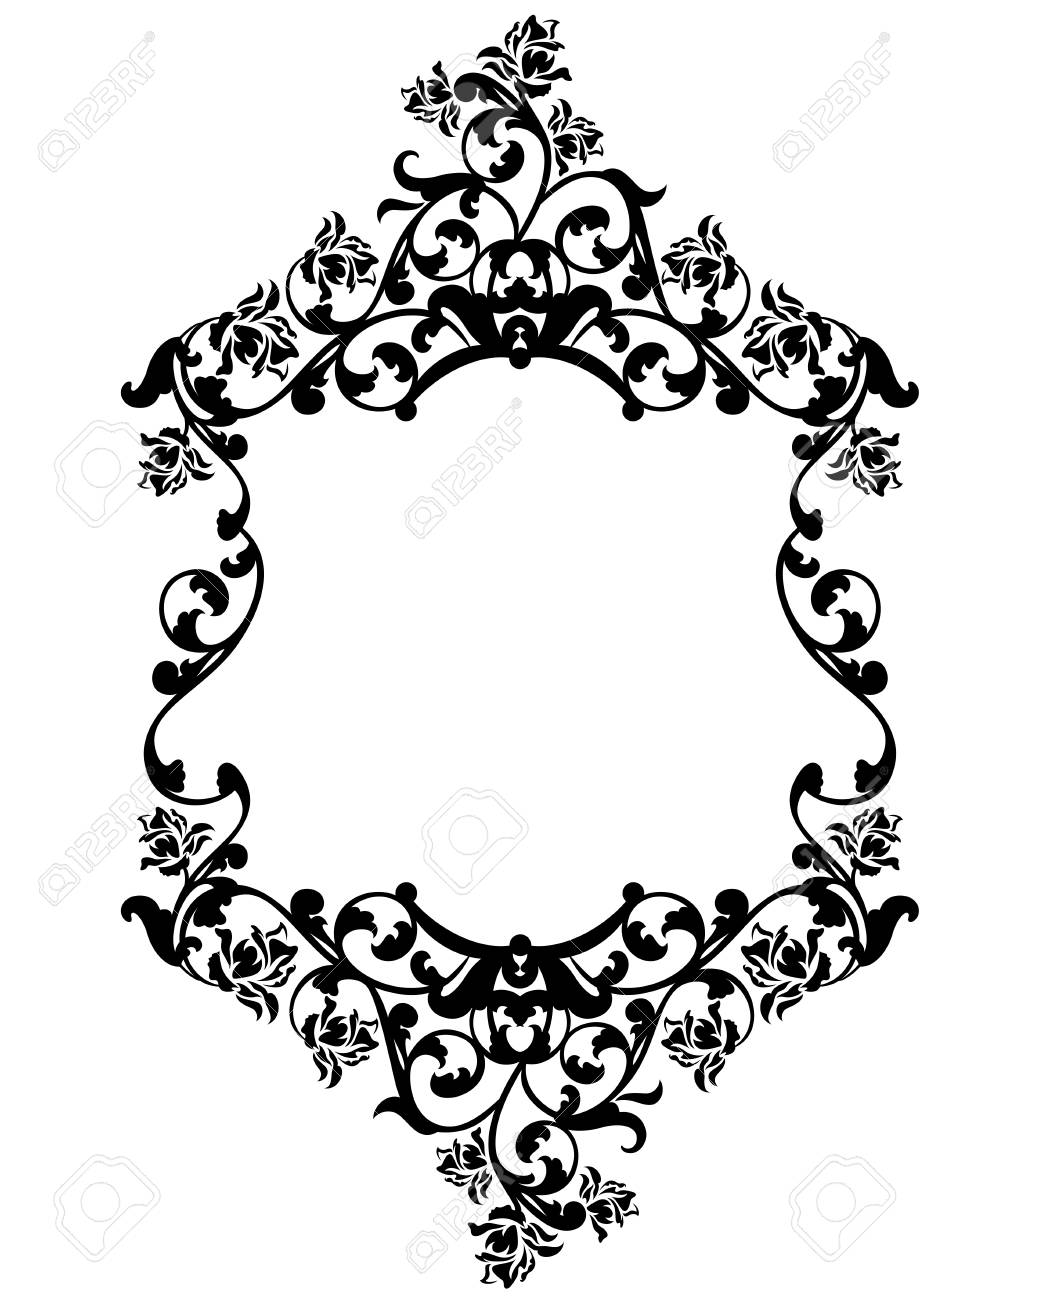 Rose Flowers Black And White Vintage Style Vector Frame Decorative Design Stock